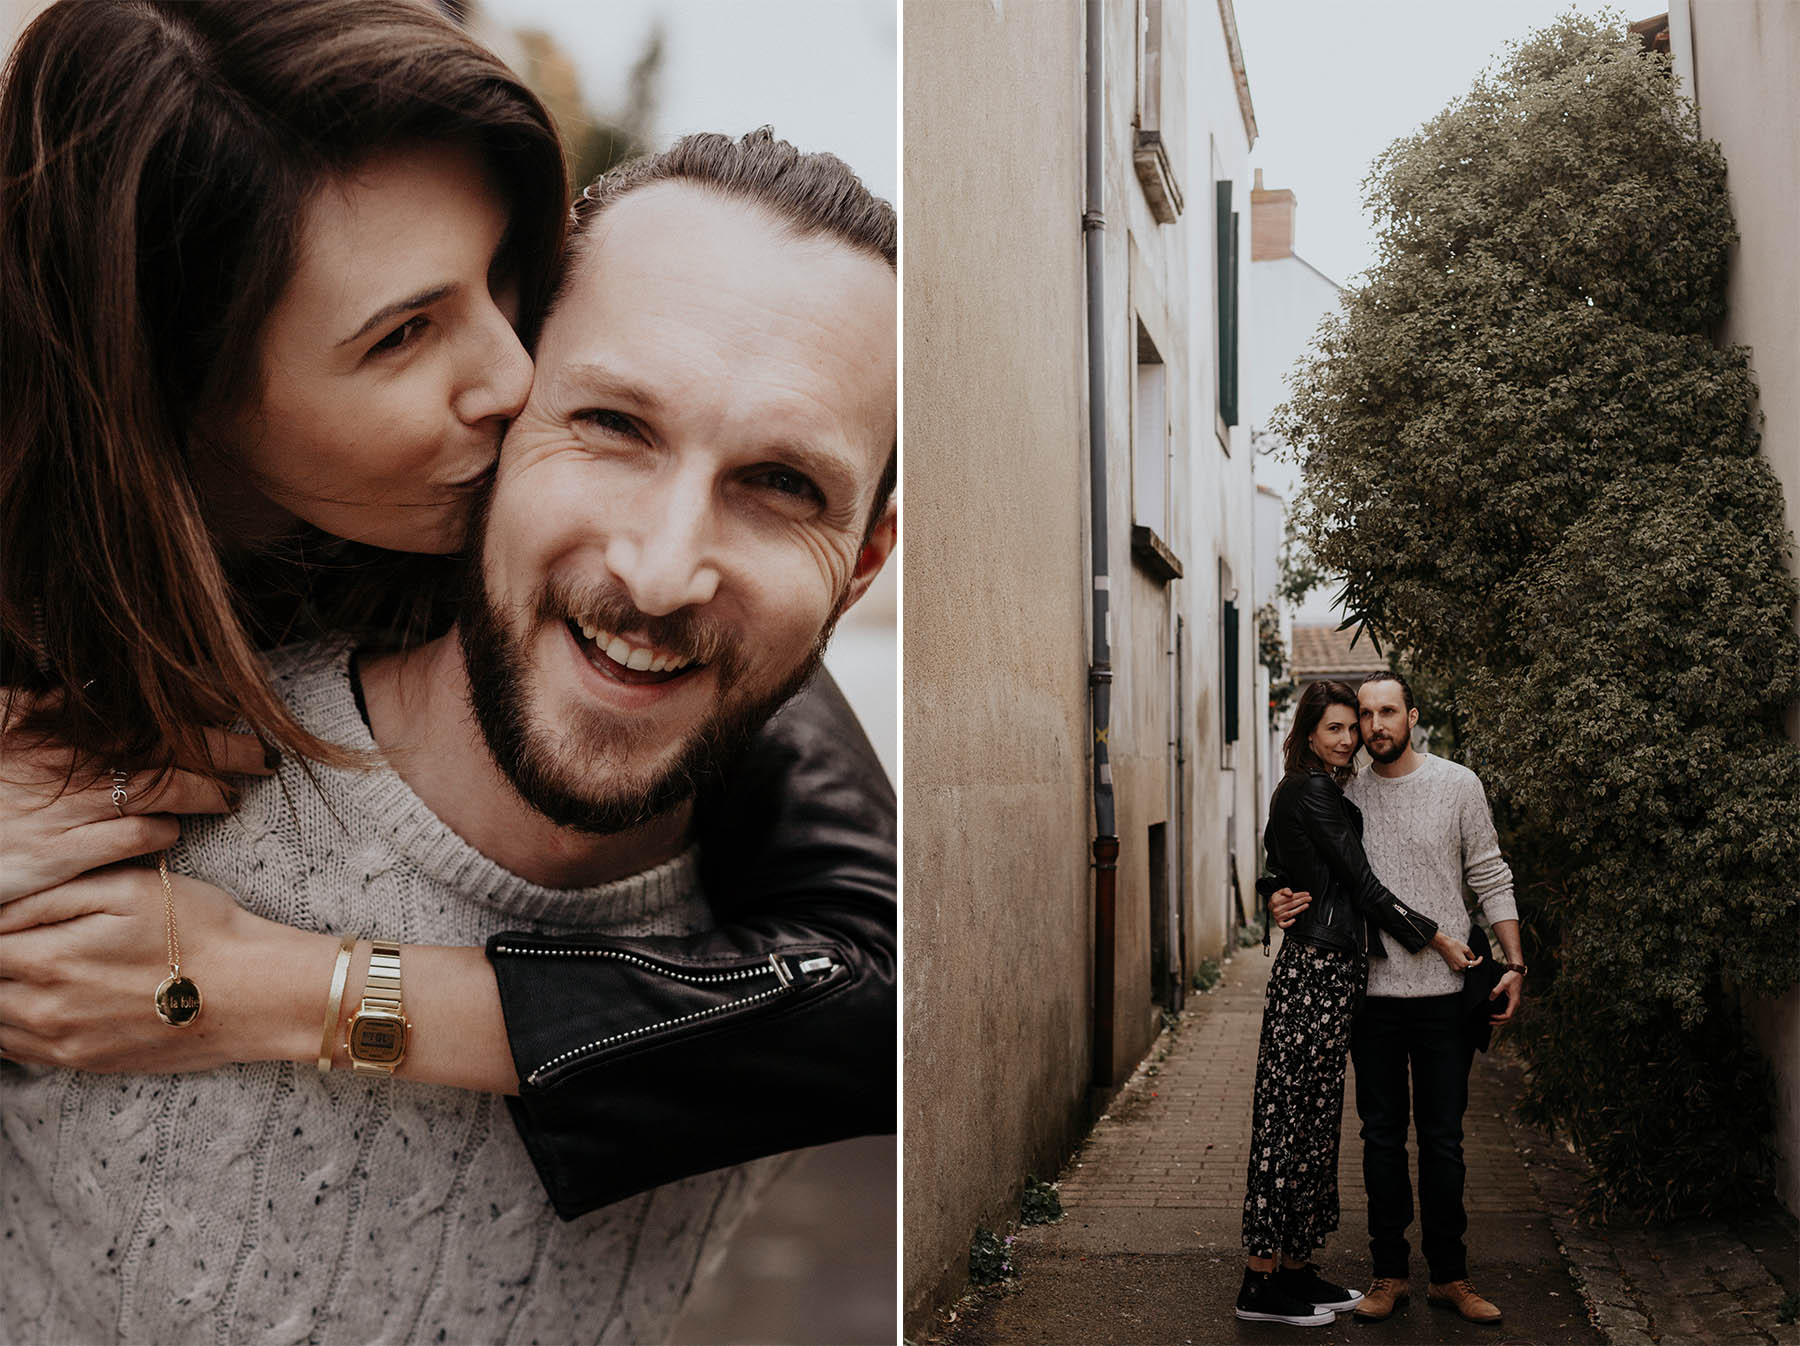 seance_engagement_trentemoult_flavie_nelly_photographe_nantes-2